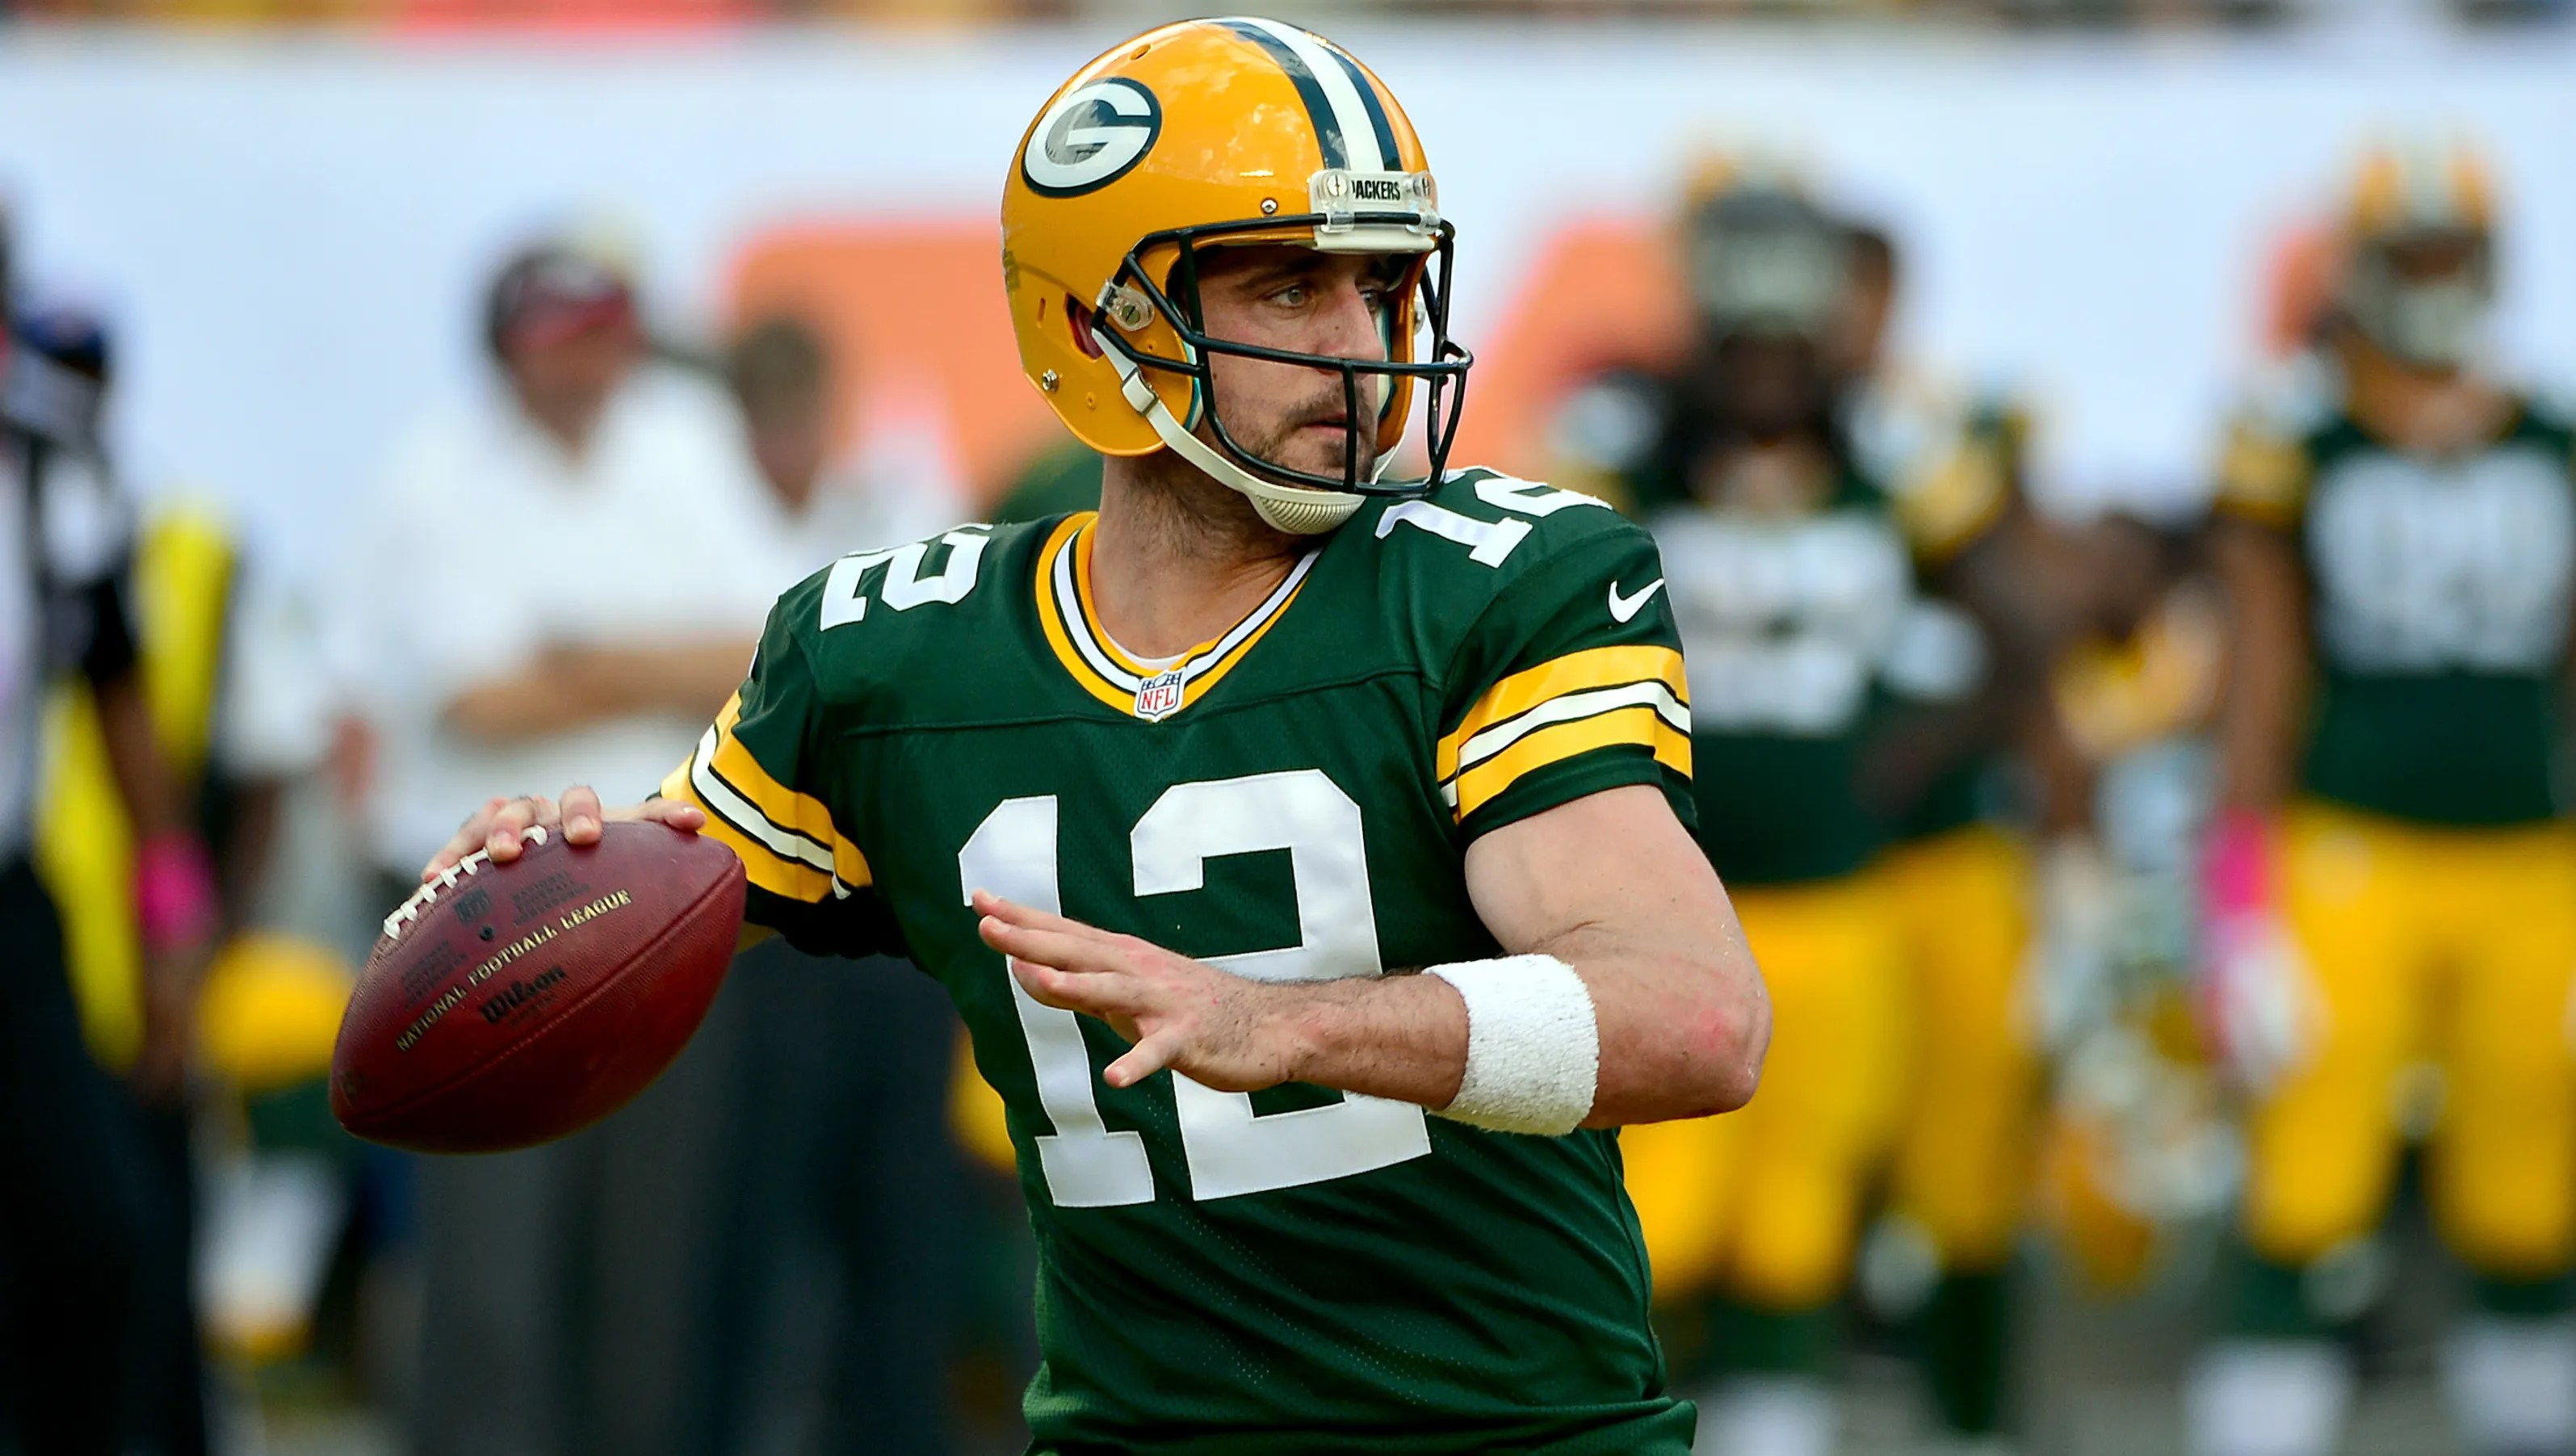 Green Bay Packers Wallpaper Hd Aaron Rodgers Rallies Packers Past Dolphins 27 24